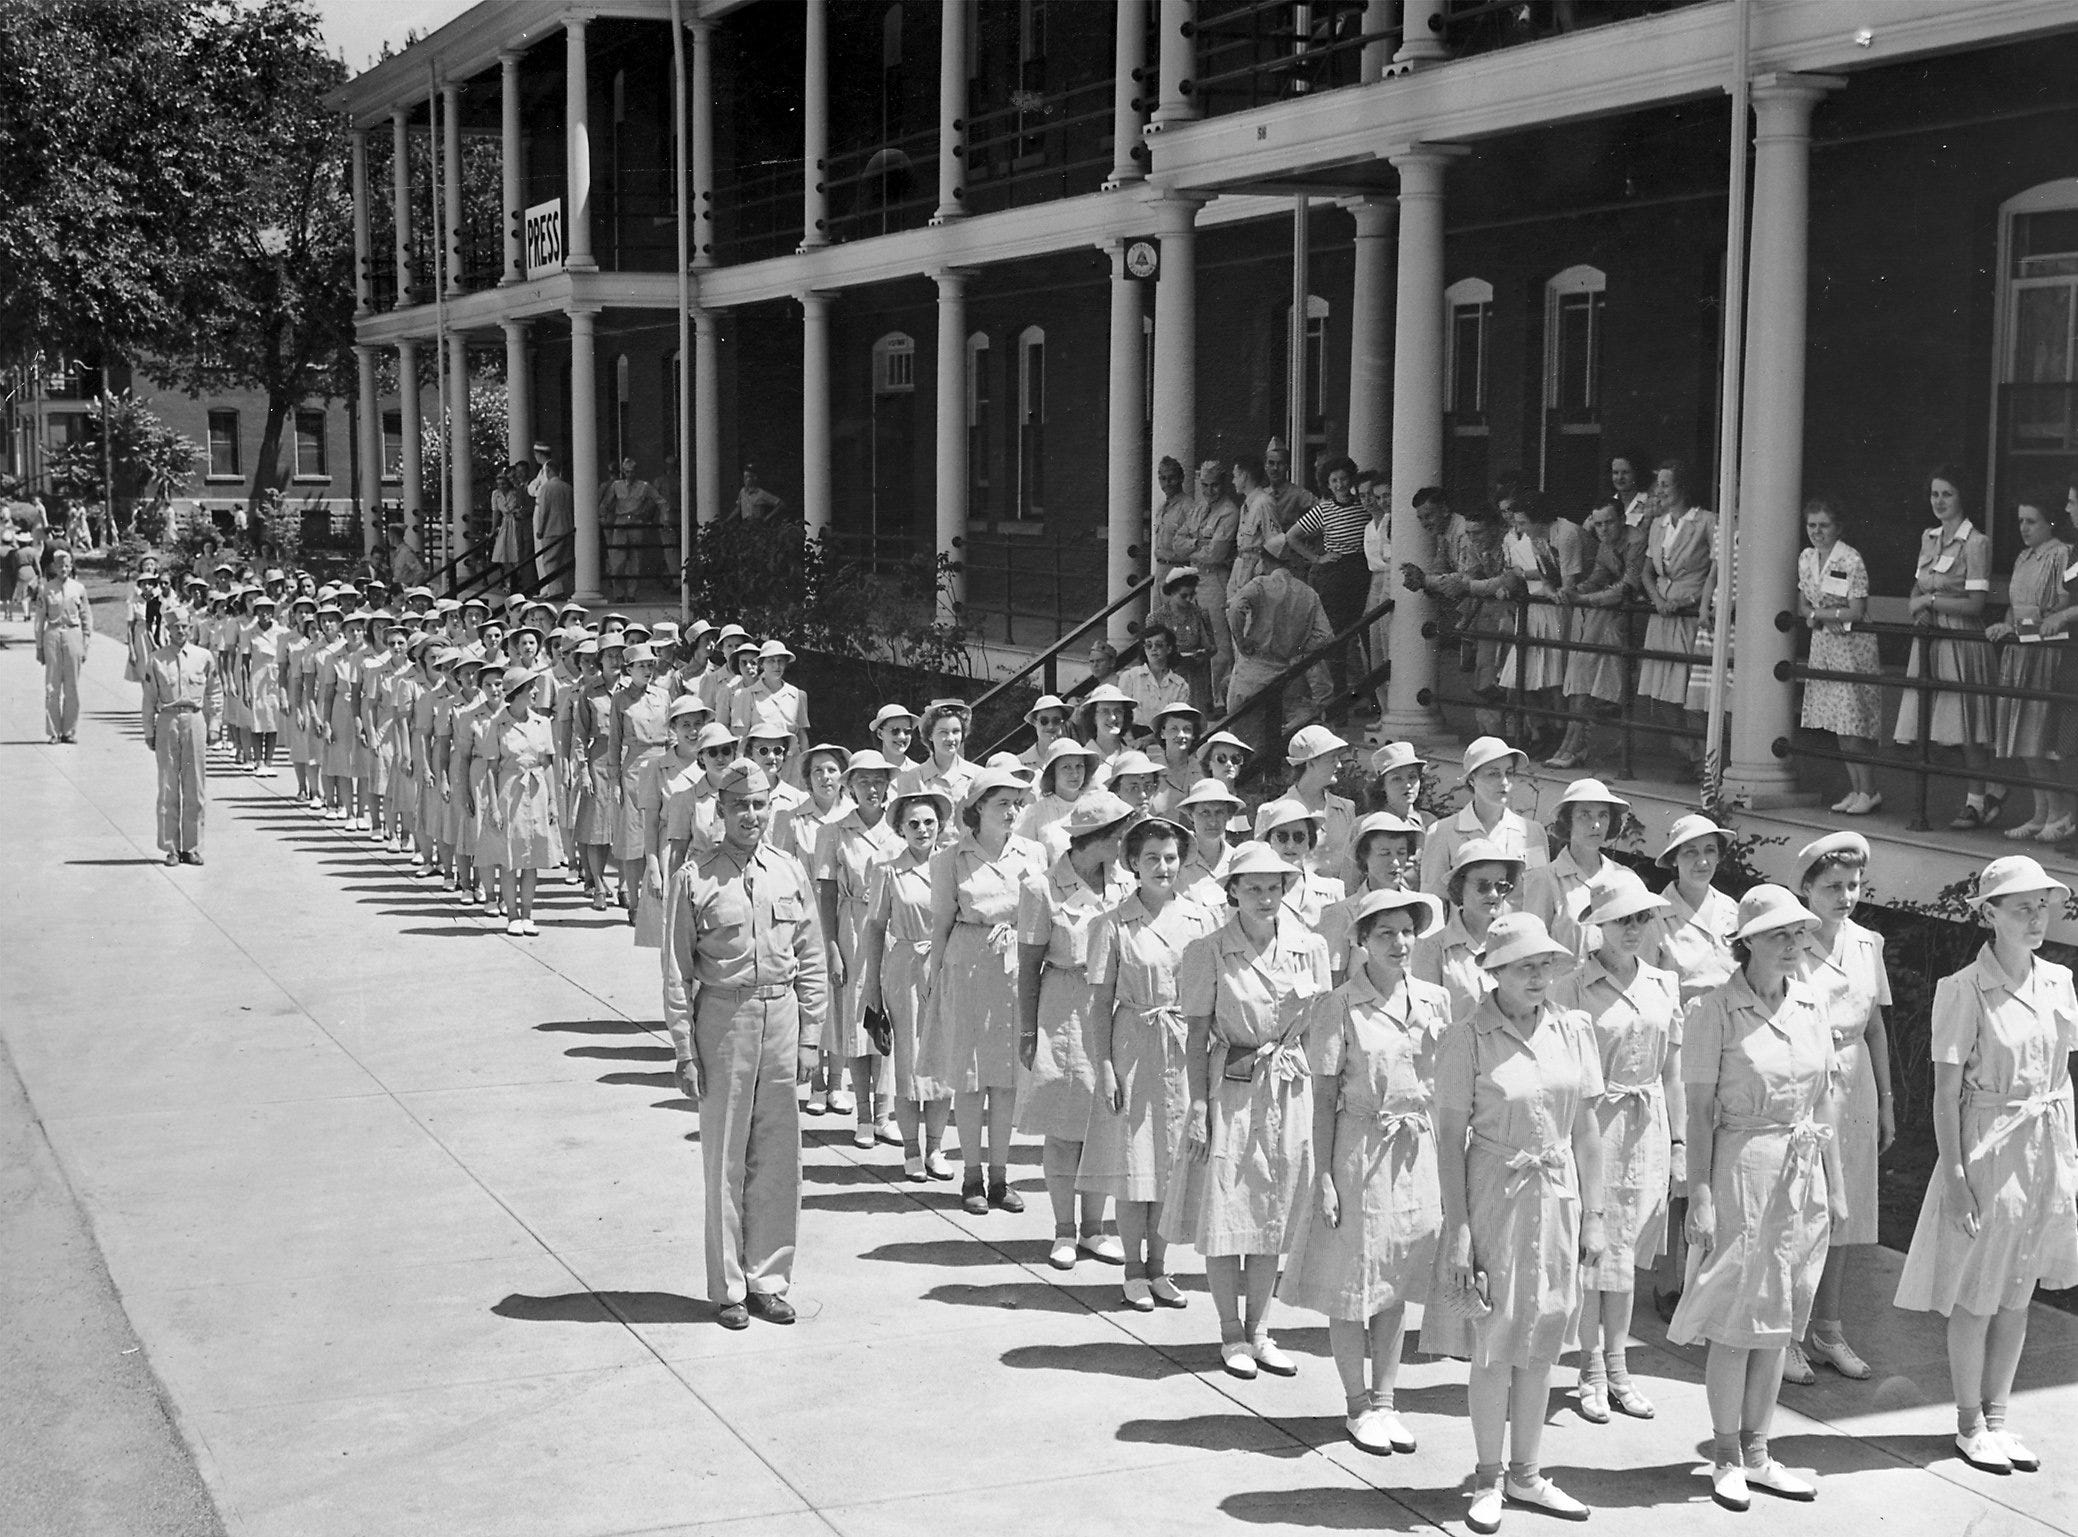 Women's Army Auxiliary Corps members formed ranks in front of the barracks on July 21, 1942, their first day of training at the Fort Des Moines Army post. The name was changed to Women's Army Corps in 1943.